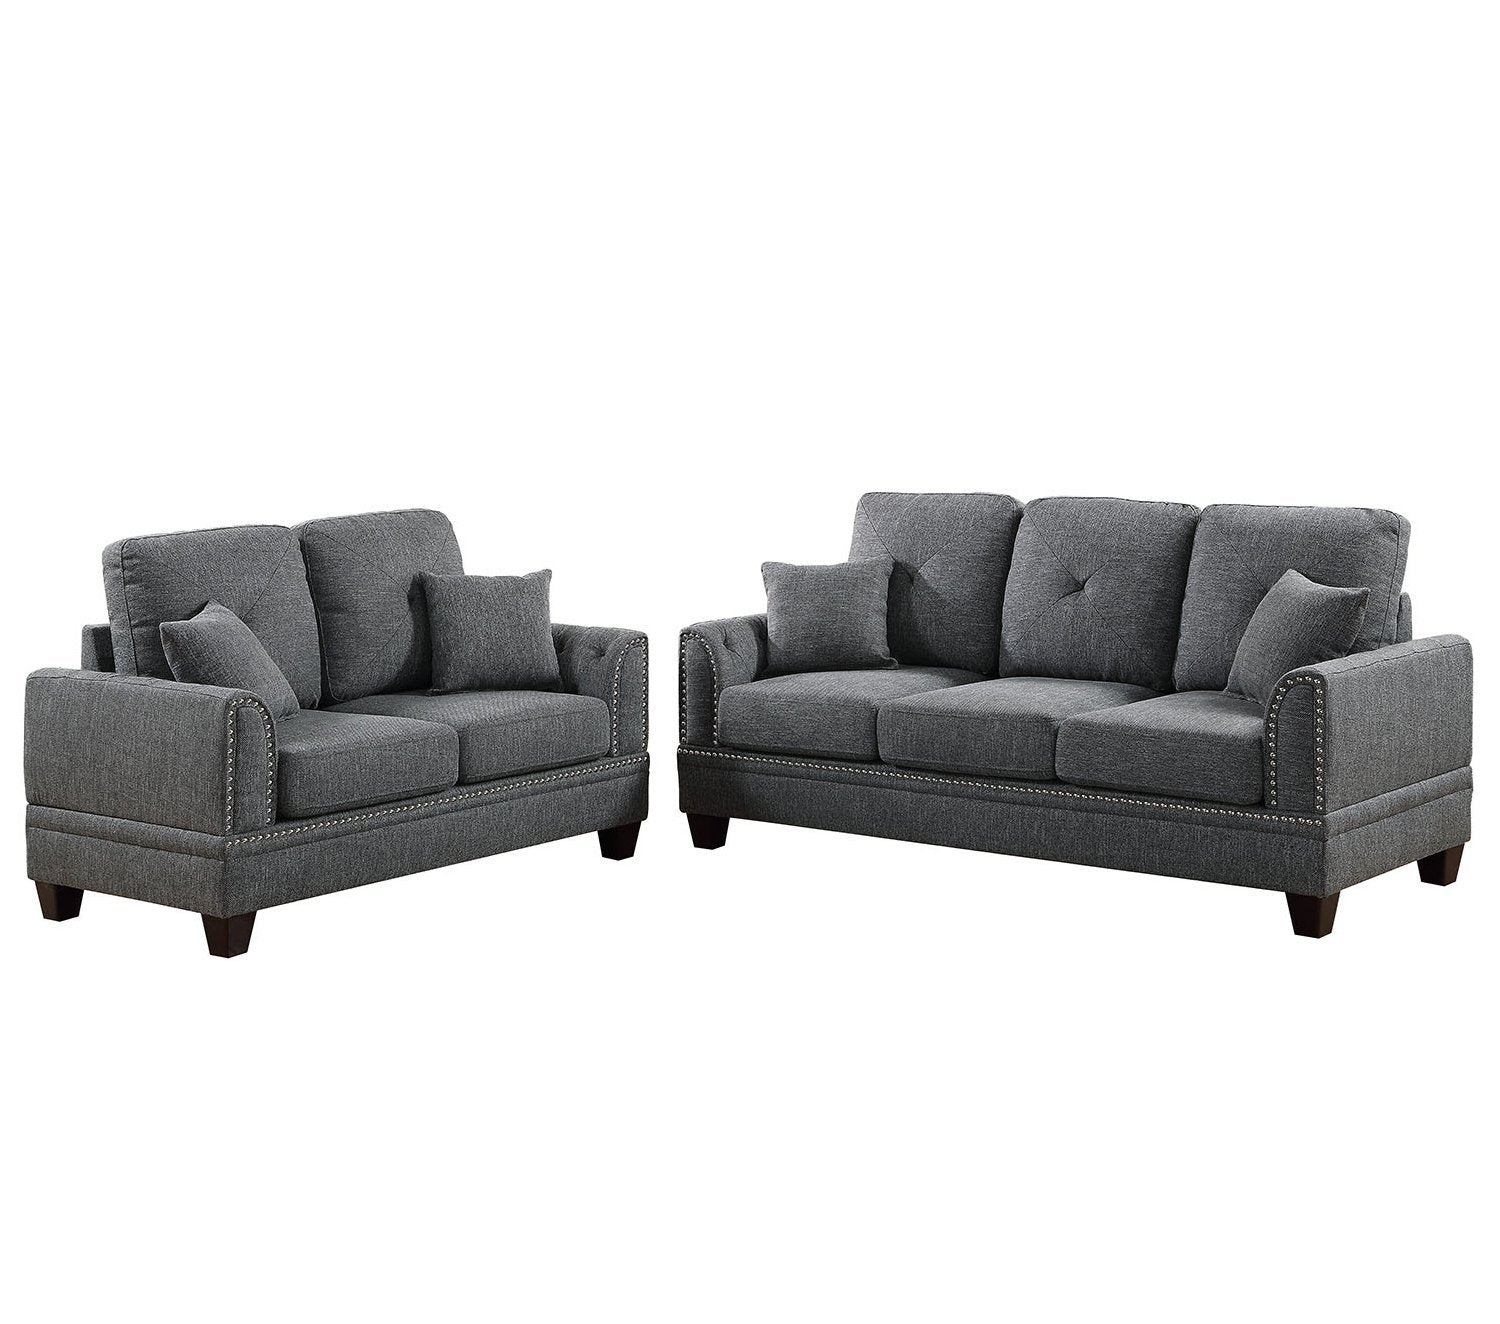 Bobkona Bailey Sofa and Loveseat, Ash Black + FREE SHIPPING in Tampa Bay & Orlando